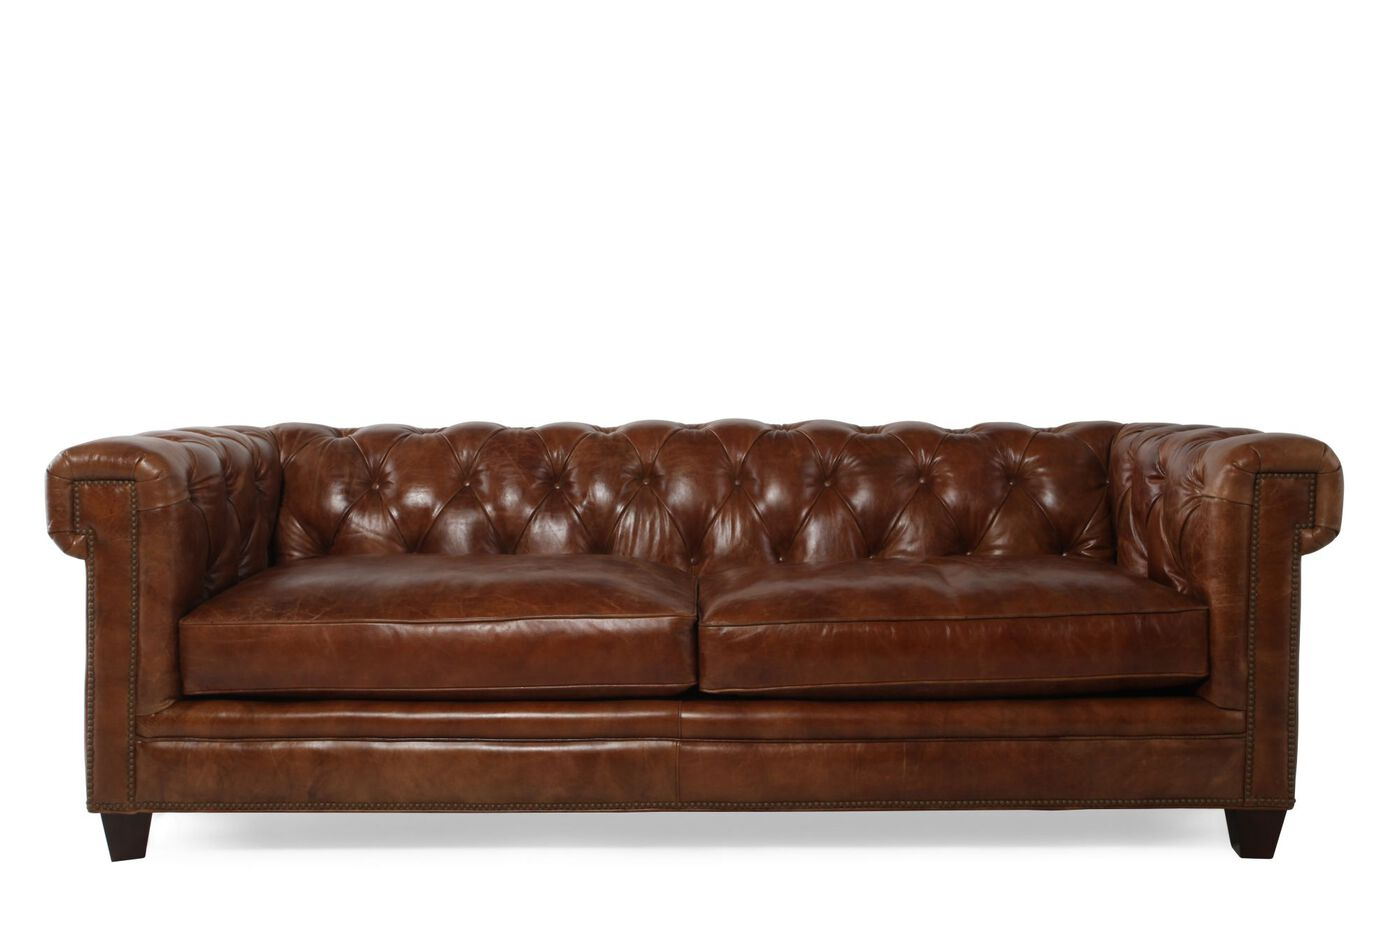 Button tufted leather 90 sofa in saddle brown mathis for Sofa upholstery